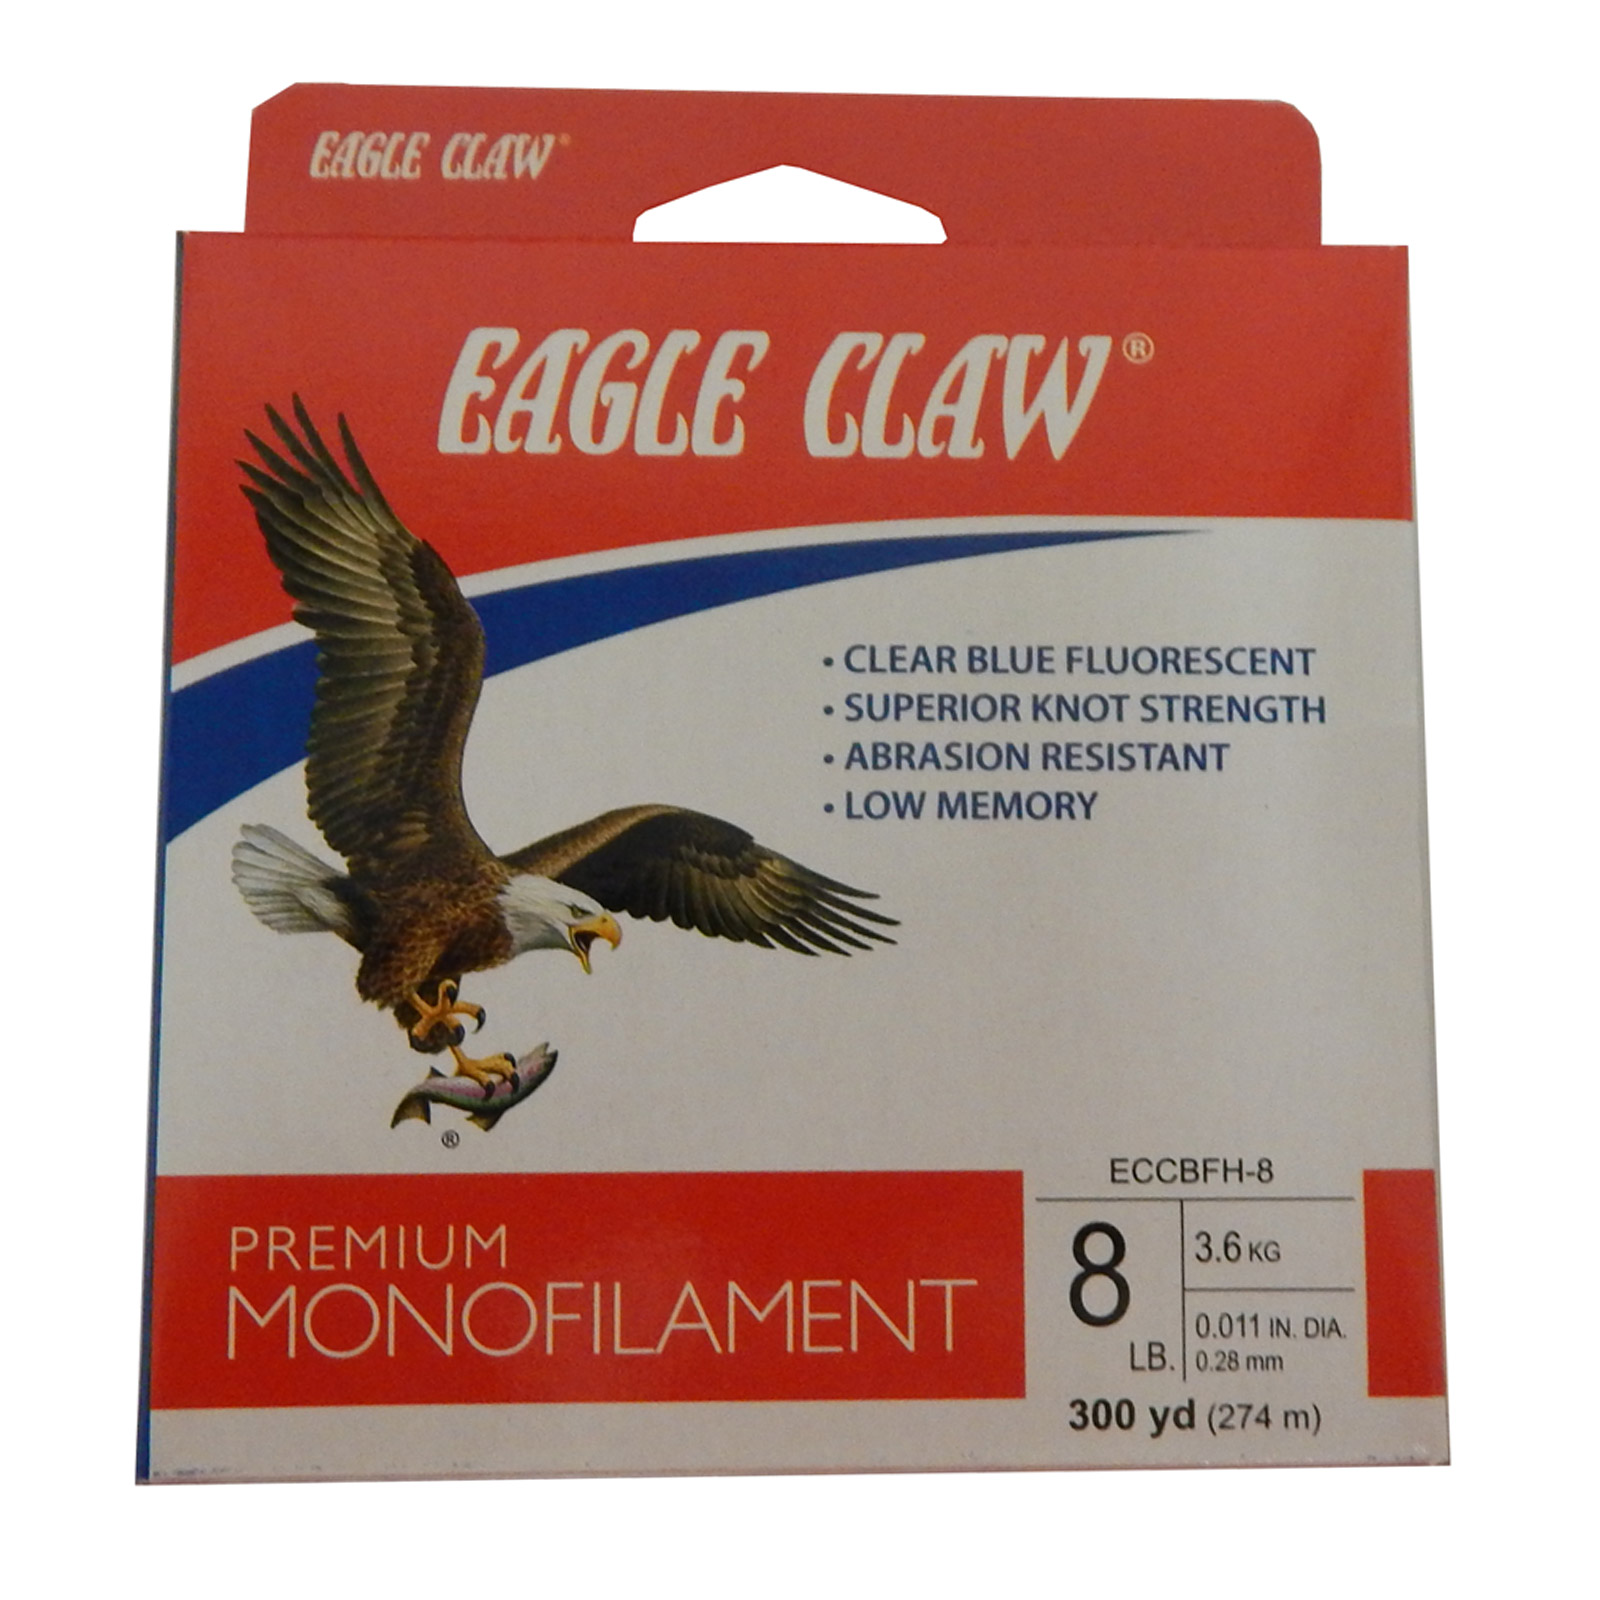 Eagle Claw Monofilamet 300 Yard Filler Spool 8 lb Test Clear Blue, ECCBFH-8